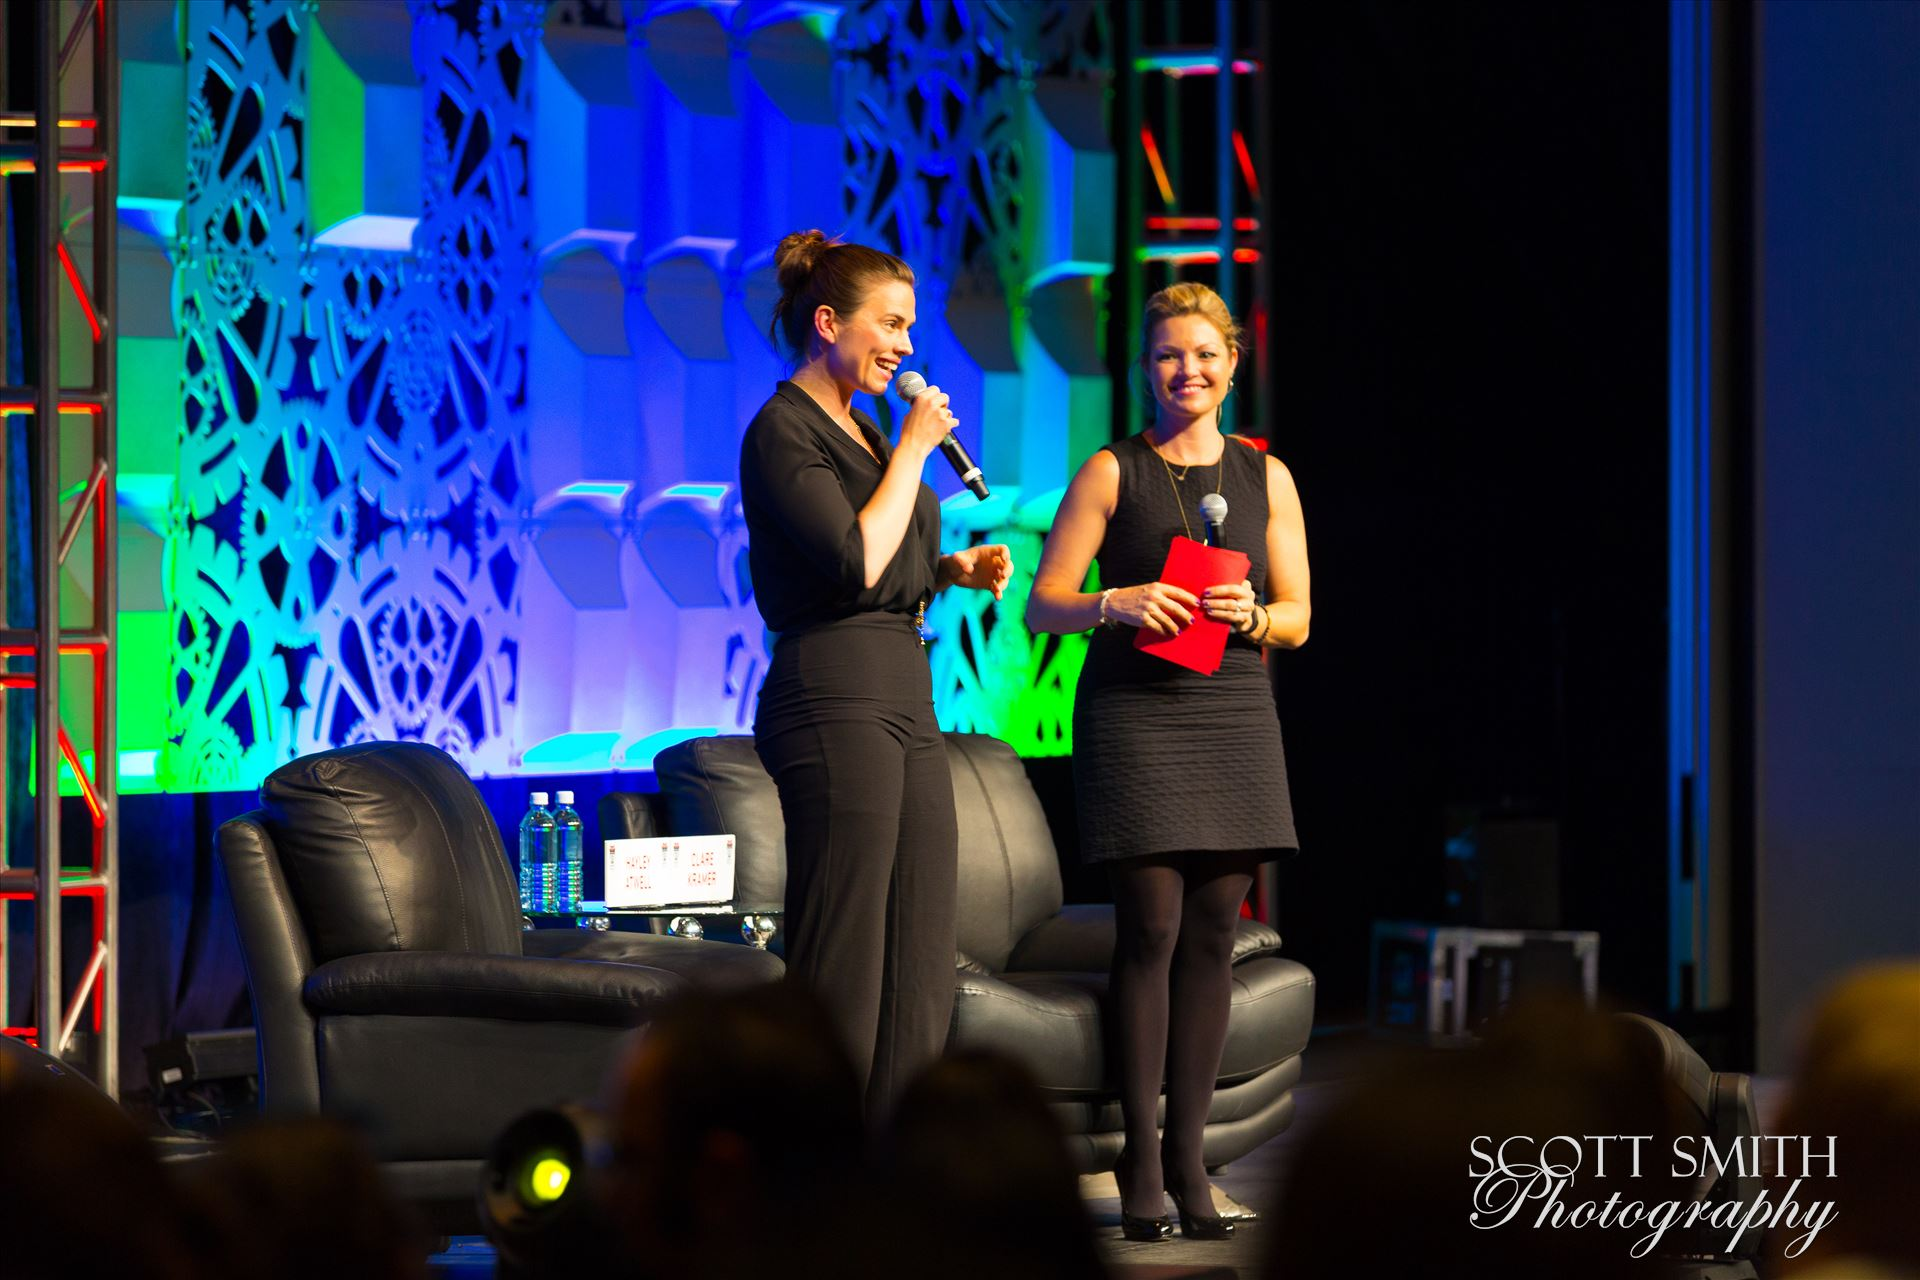 Denver Comic Con 2016 21 - Denver Comic Con 2016 at the Colorado Convention Center. Clare Kramer and Haley Atwell. by D Scott Smith